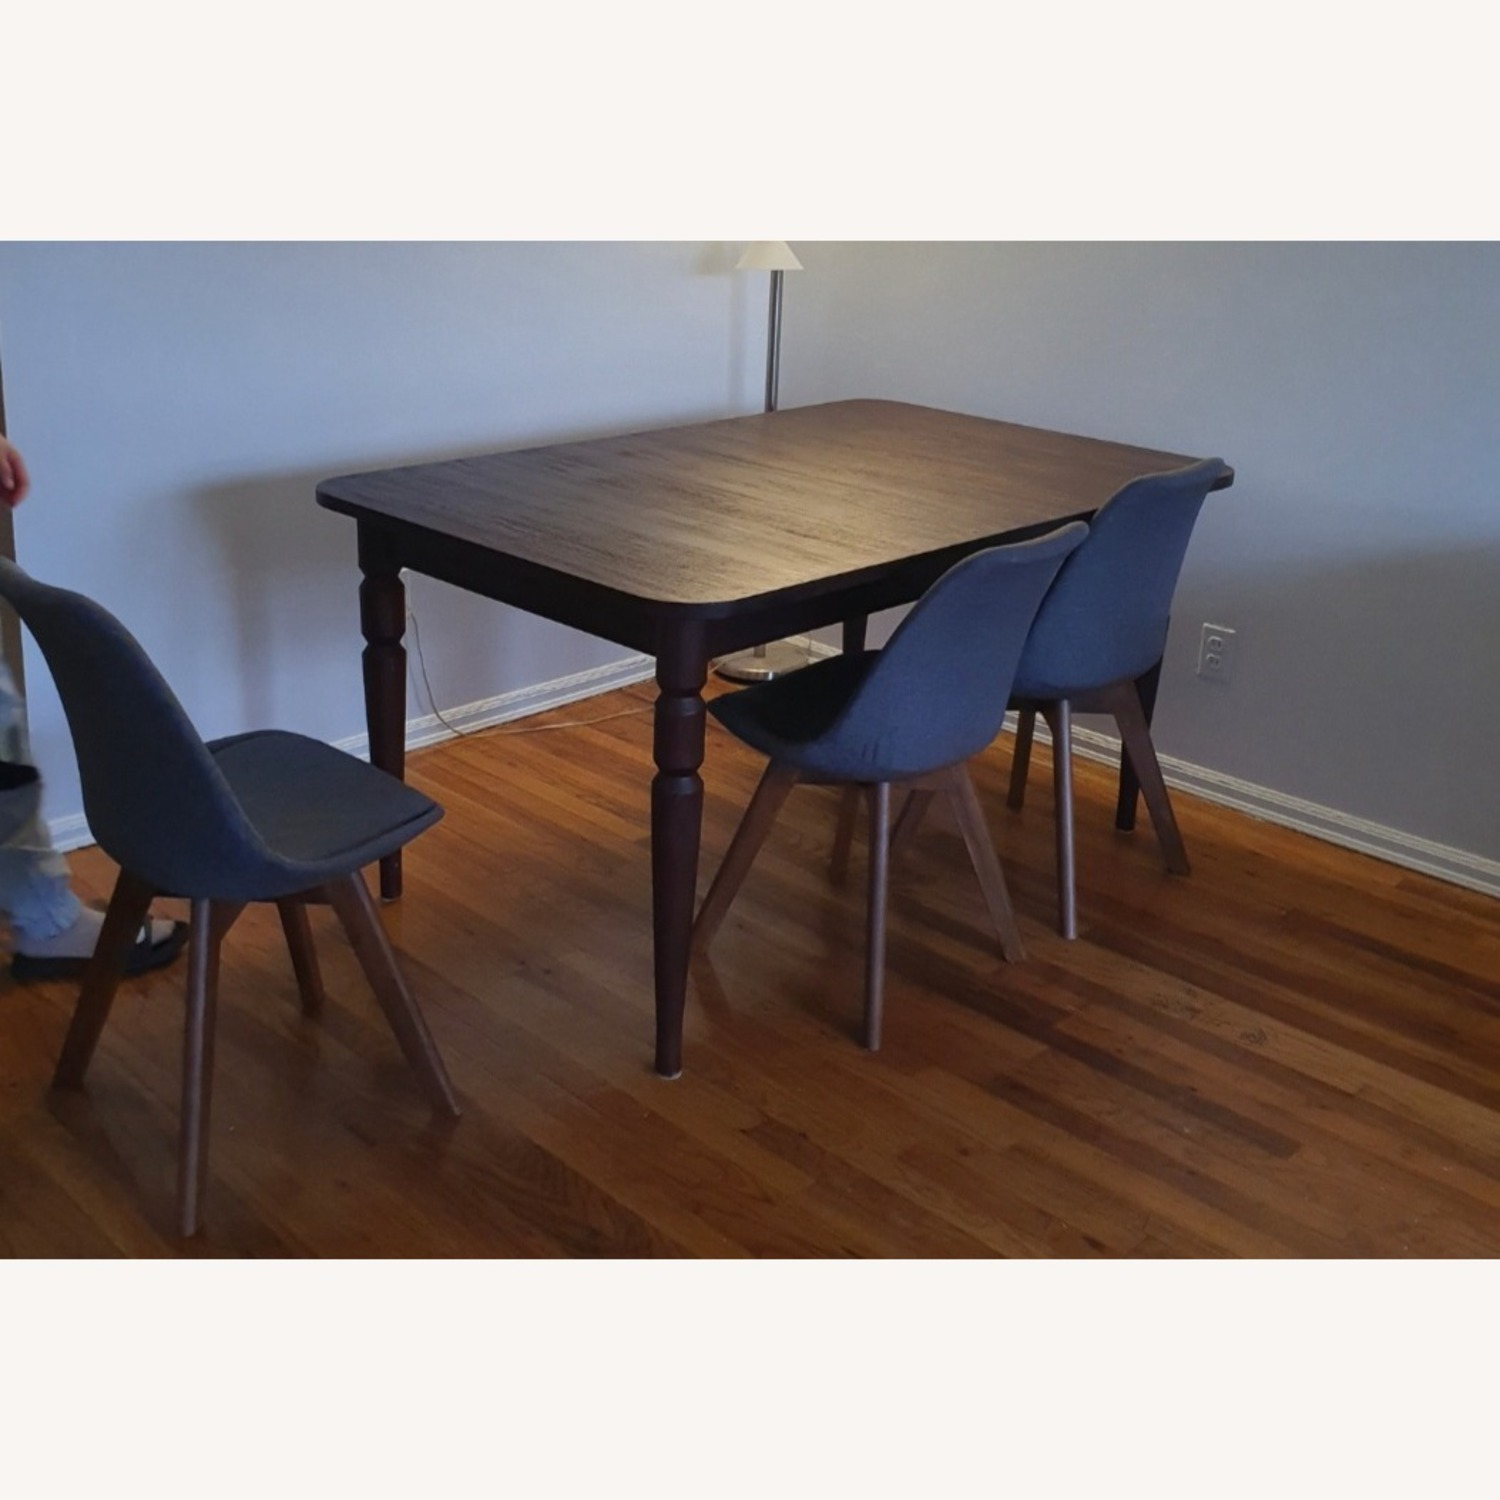 Crate & Barrel Extendable Hard Wood Dining Table - image-1